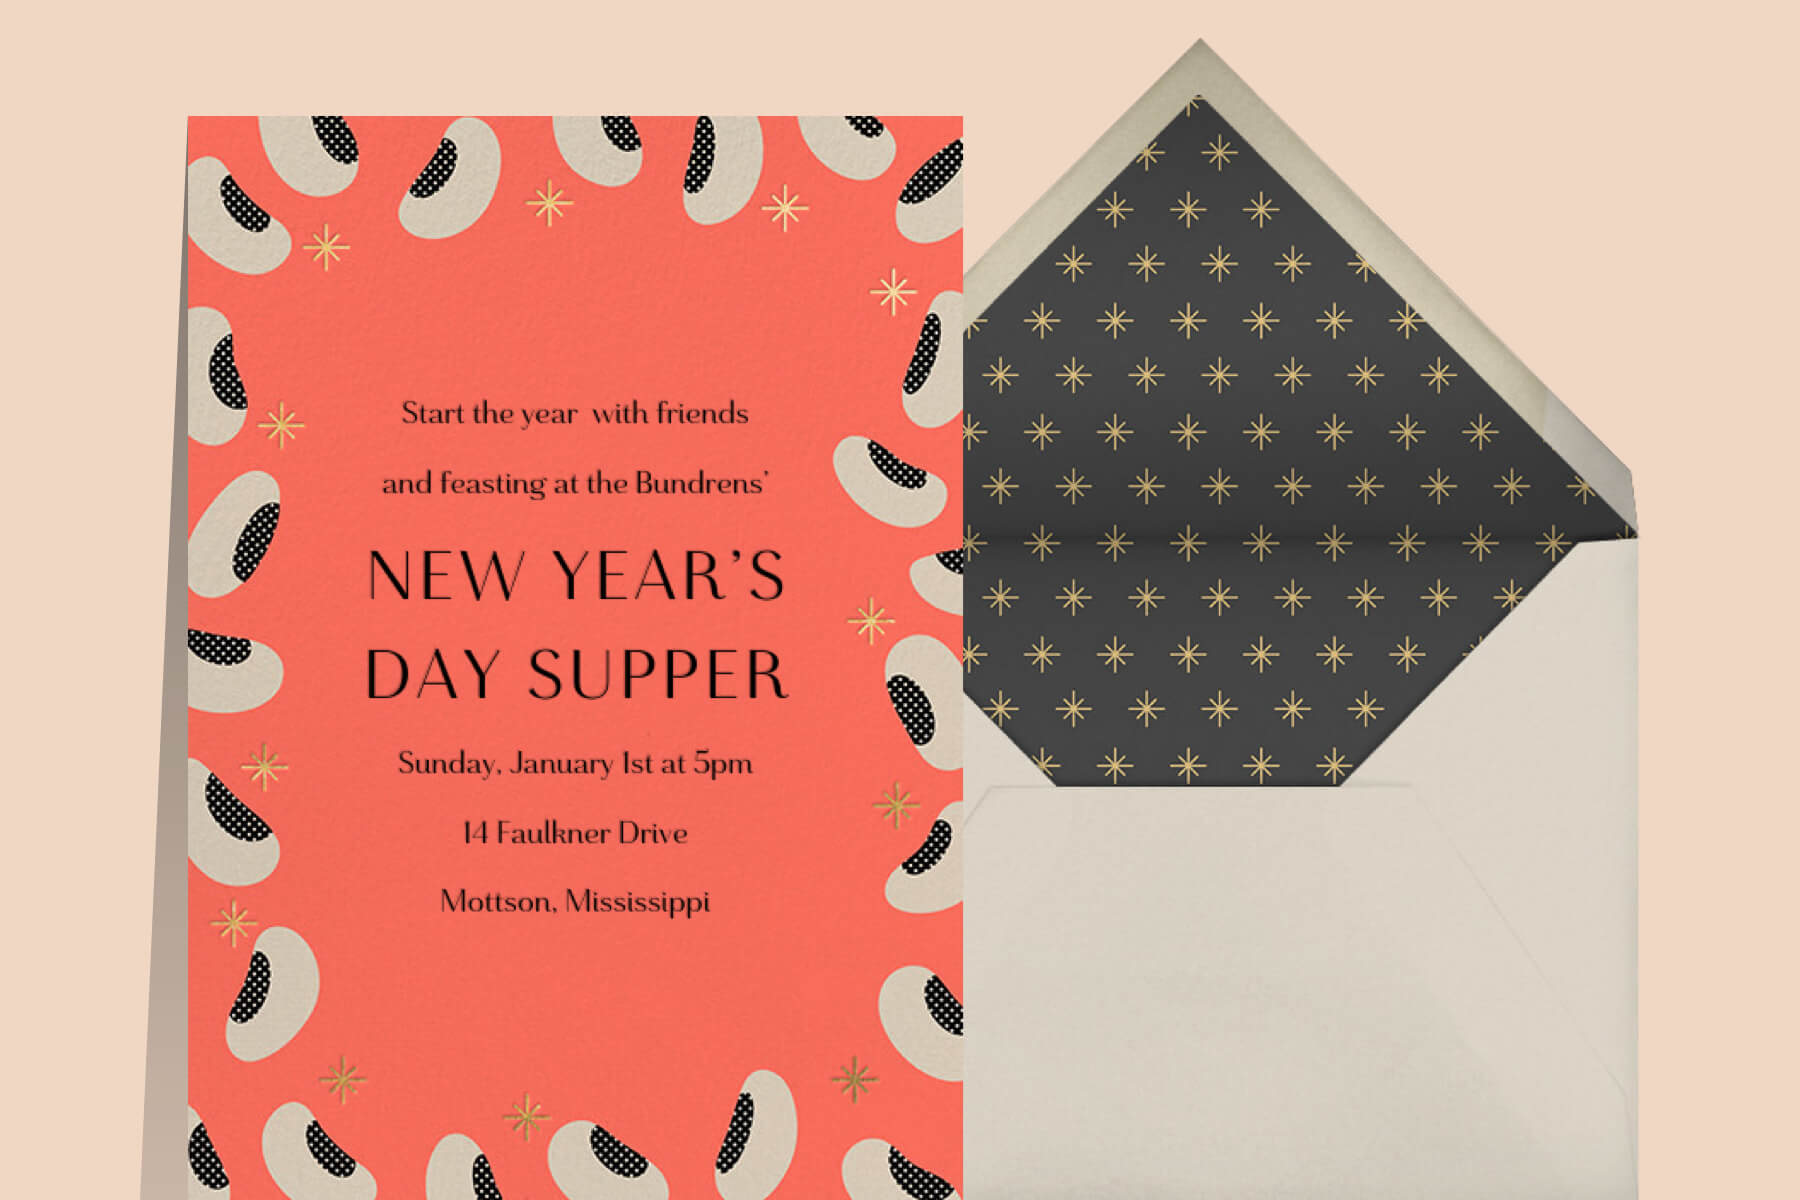 New Year's Eve potluck invitation wording featuring black eyed peas on a coral background from Paperless Post